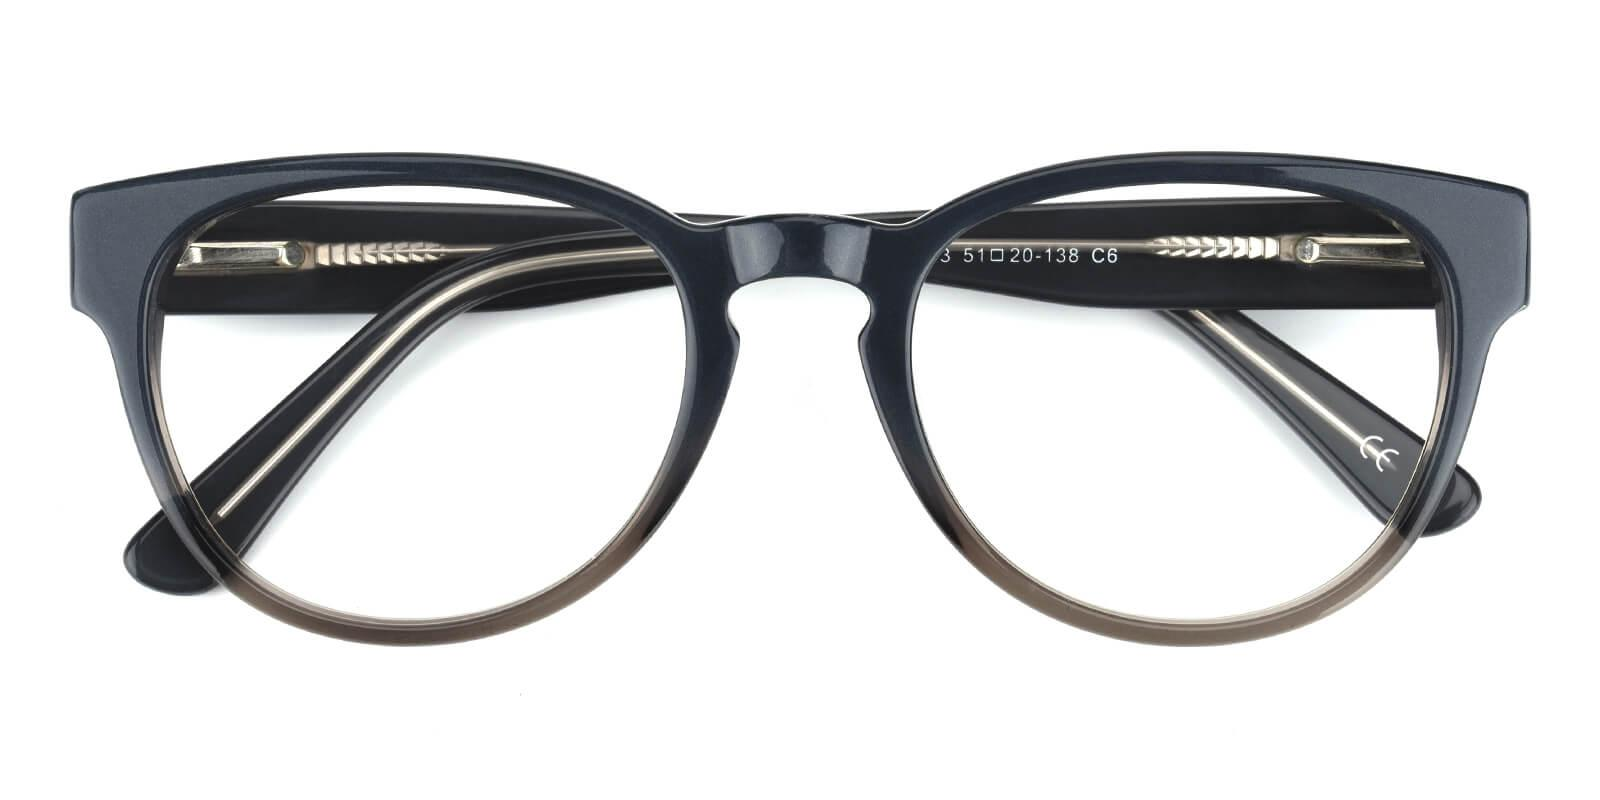 Bringmo-Gray-Round / Cat-Acetate-Eyeglasses-detail